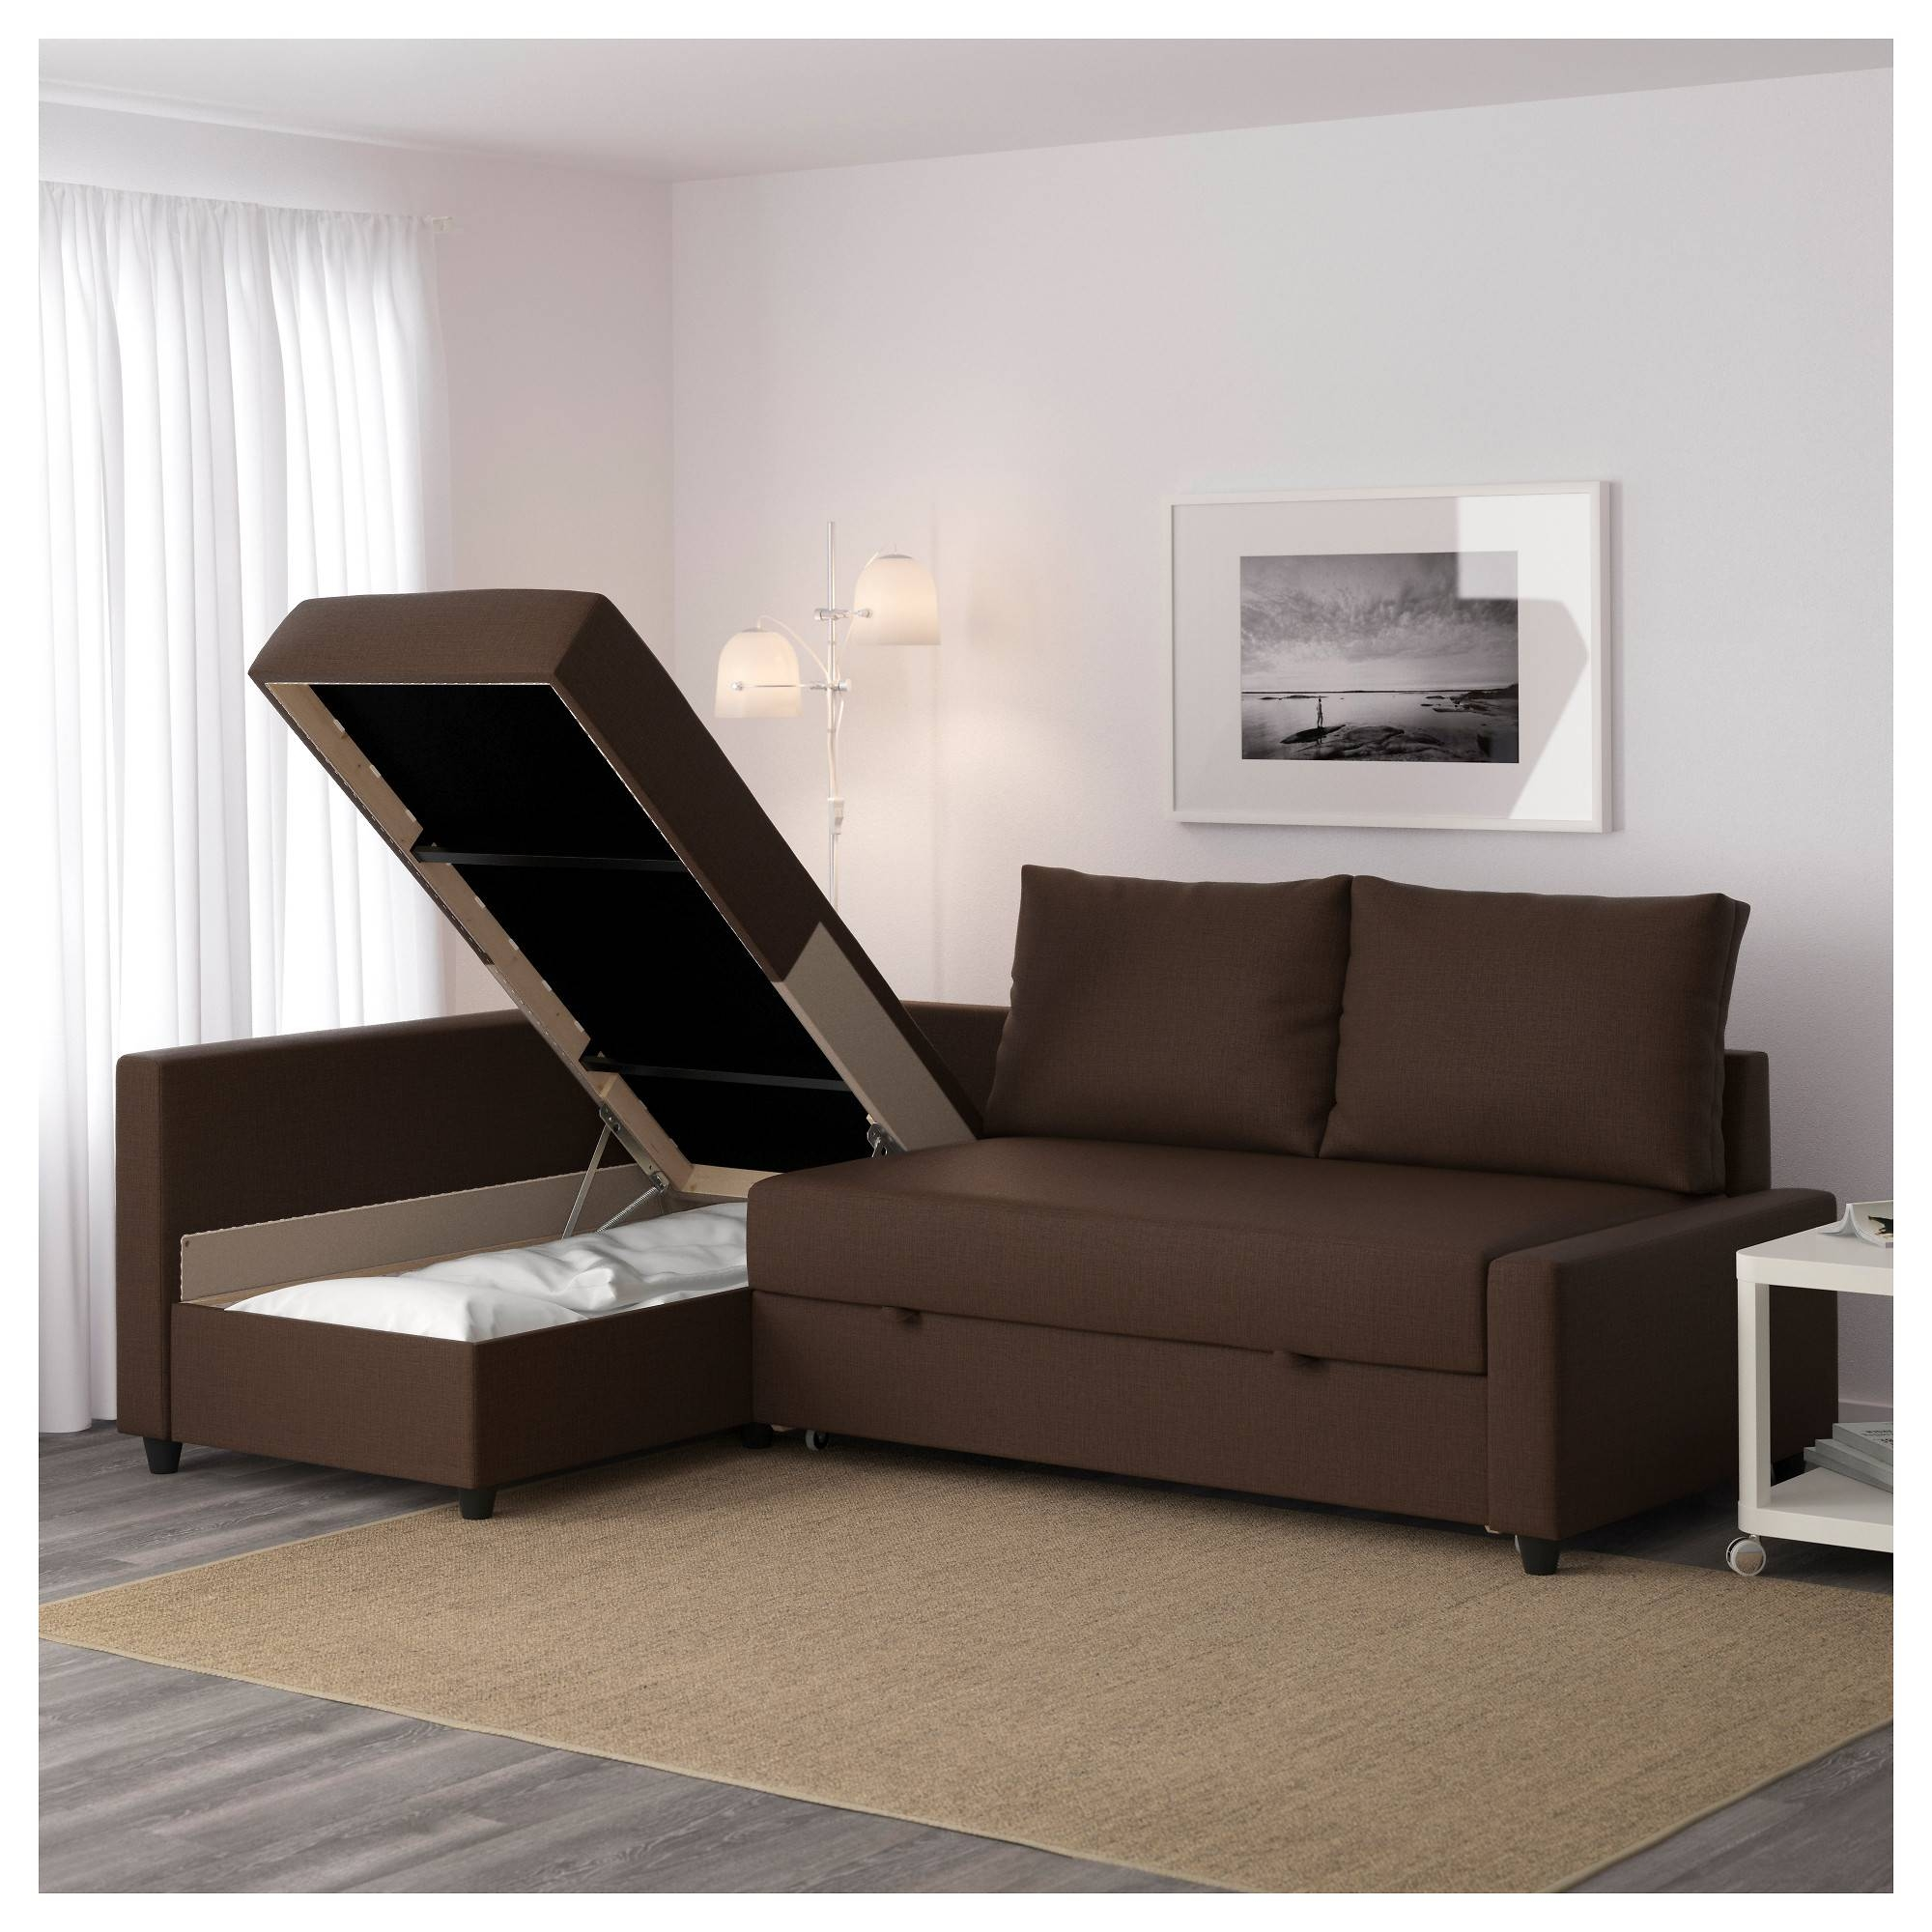 Sofas Center : Corner Sofa Beds Uk Cheap For Small Rooms Ikea With inside Cheap Corner Sofas (Image 25 of 30)